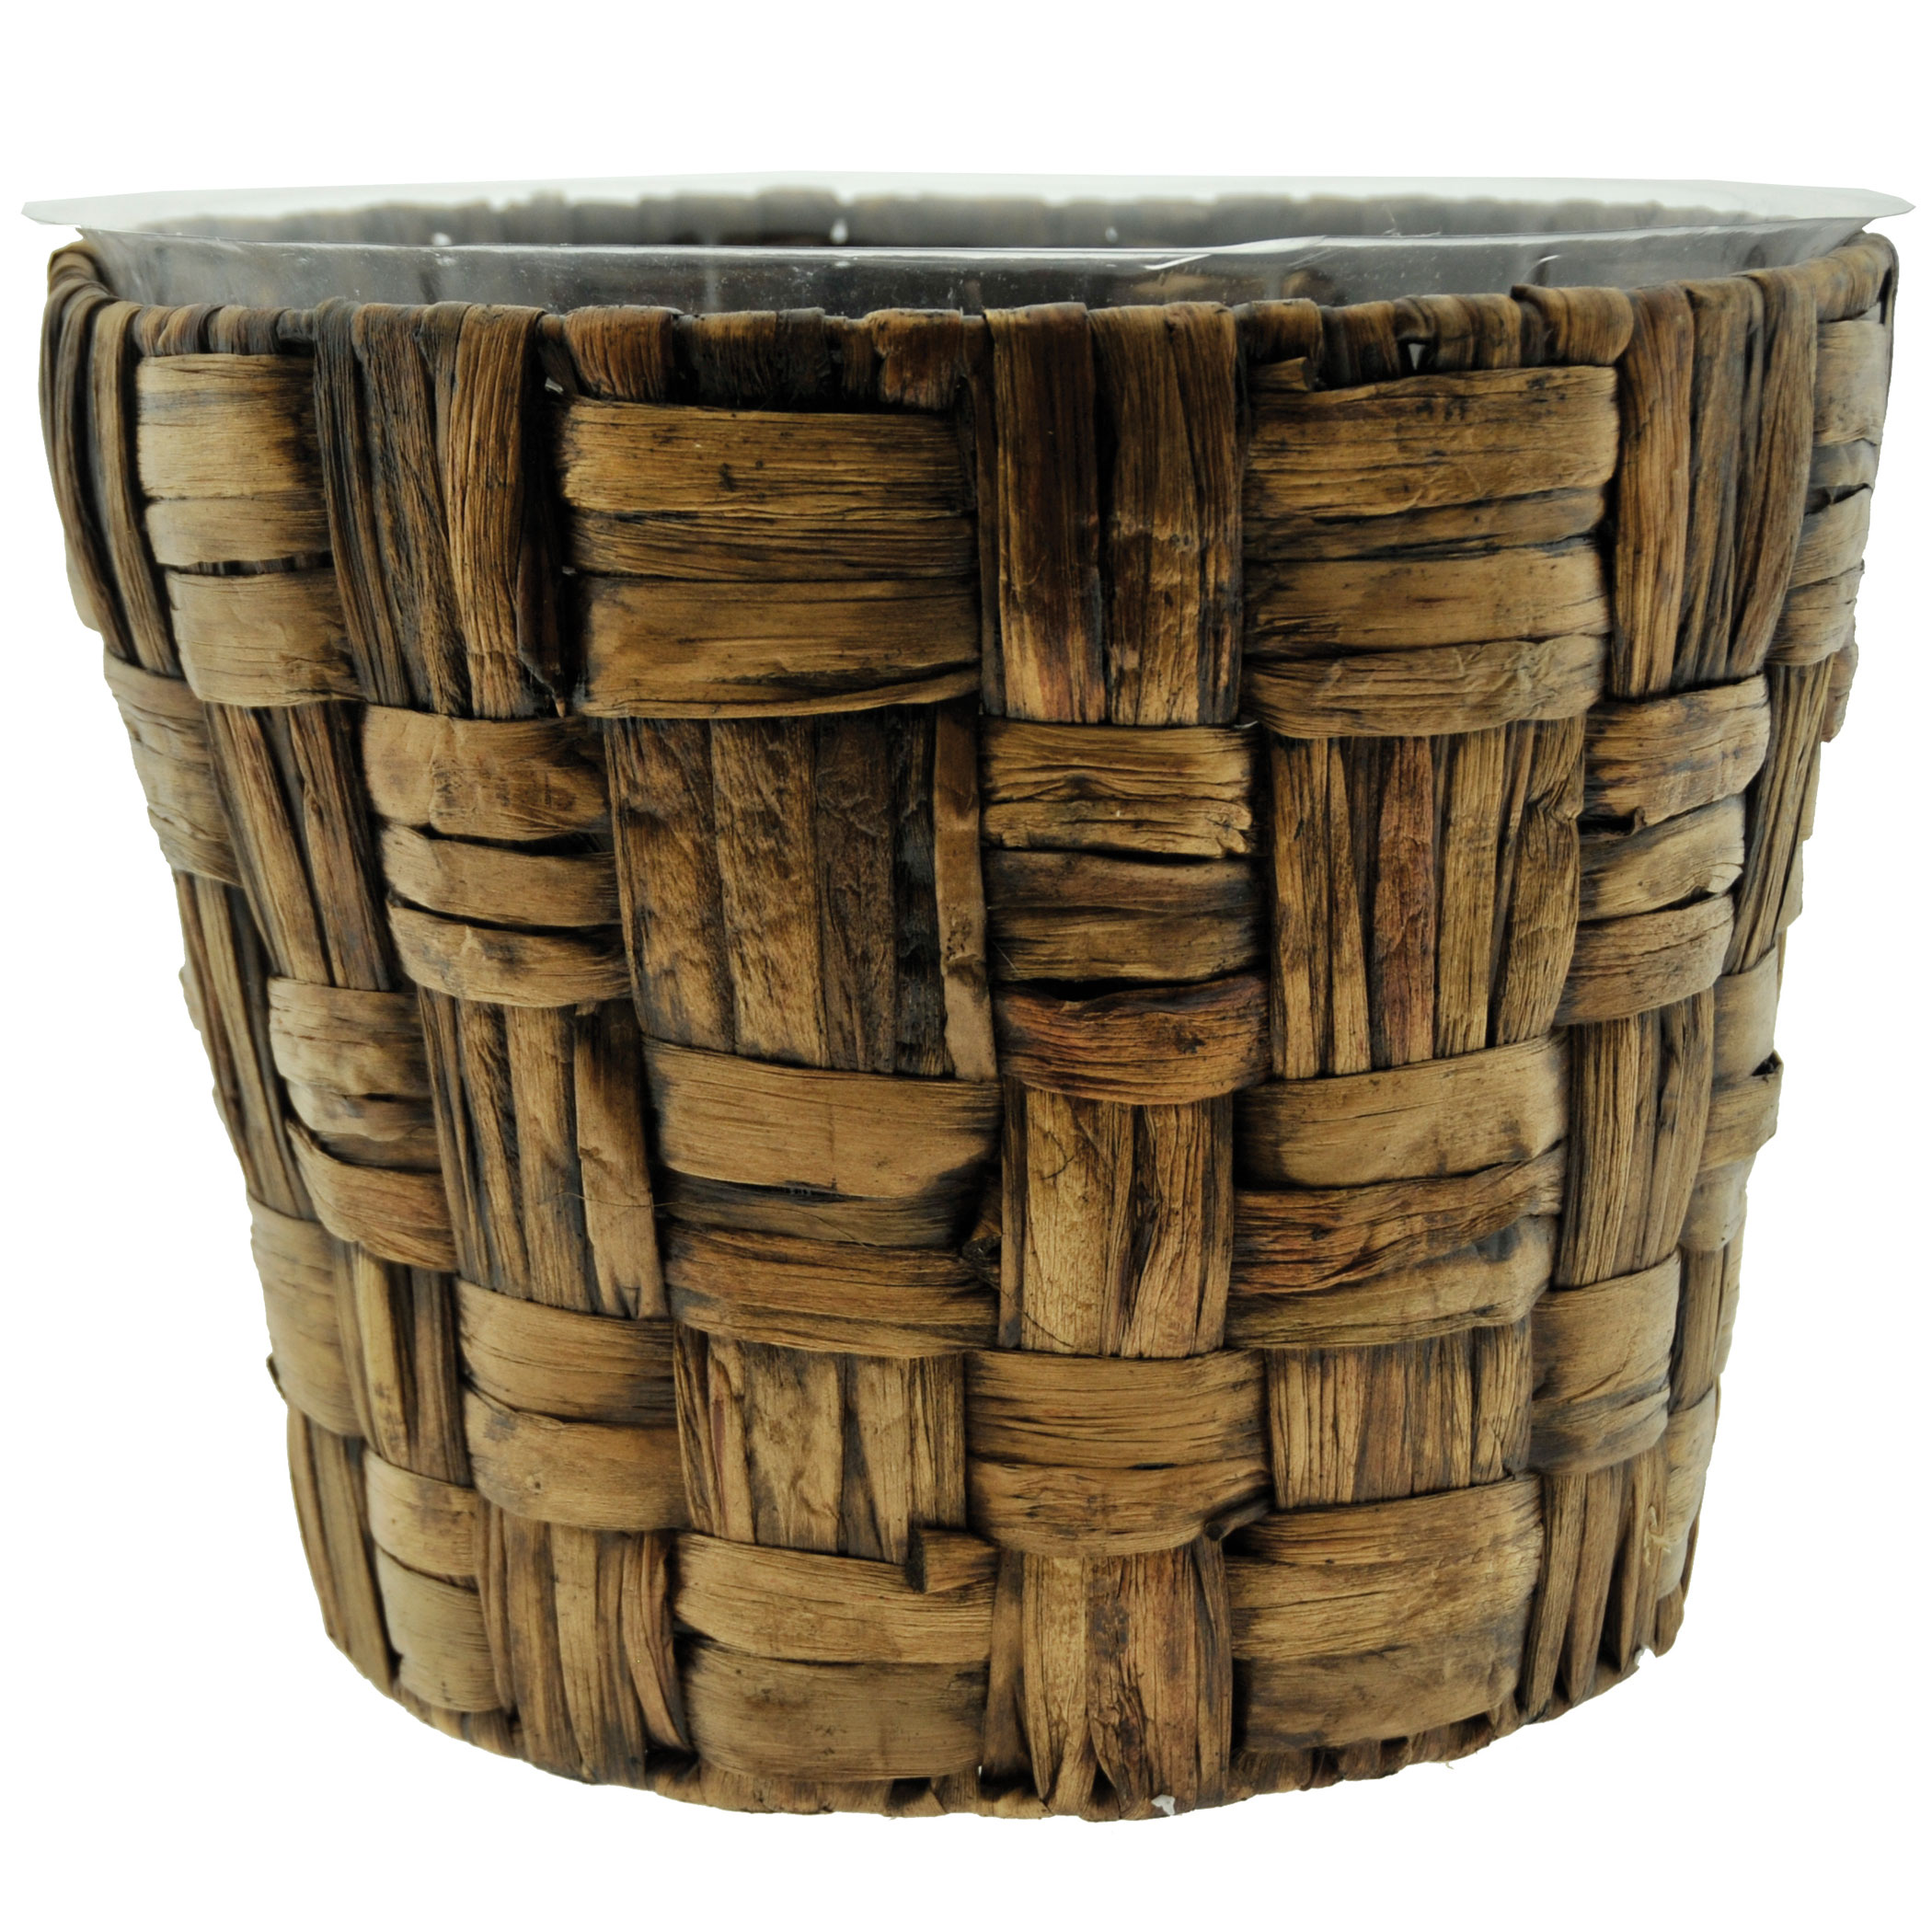 13 Inch Woven Banana Leaf Basket Fits 12 Inch Pots 22010